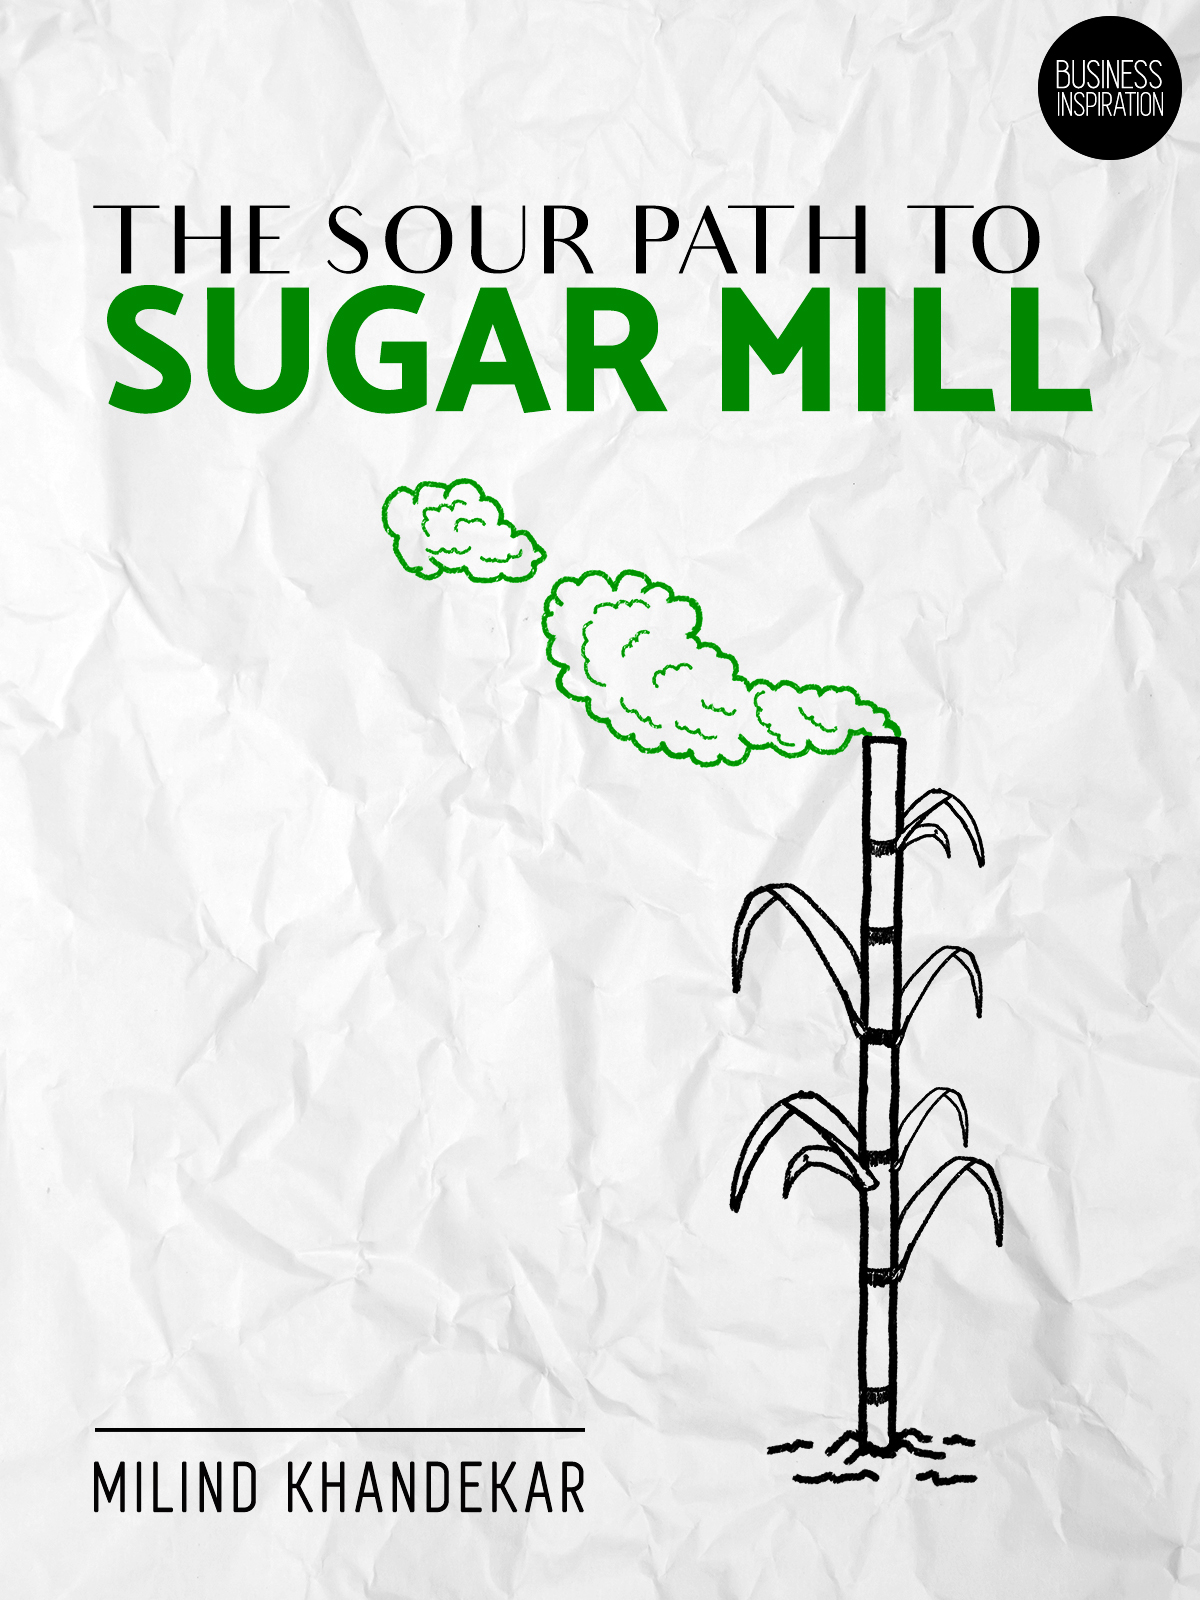 The sour path to sugar mill